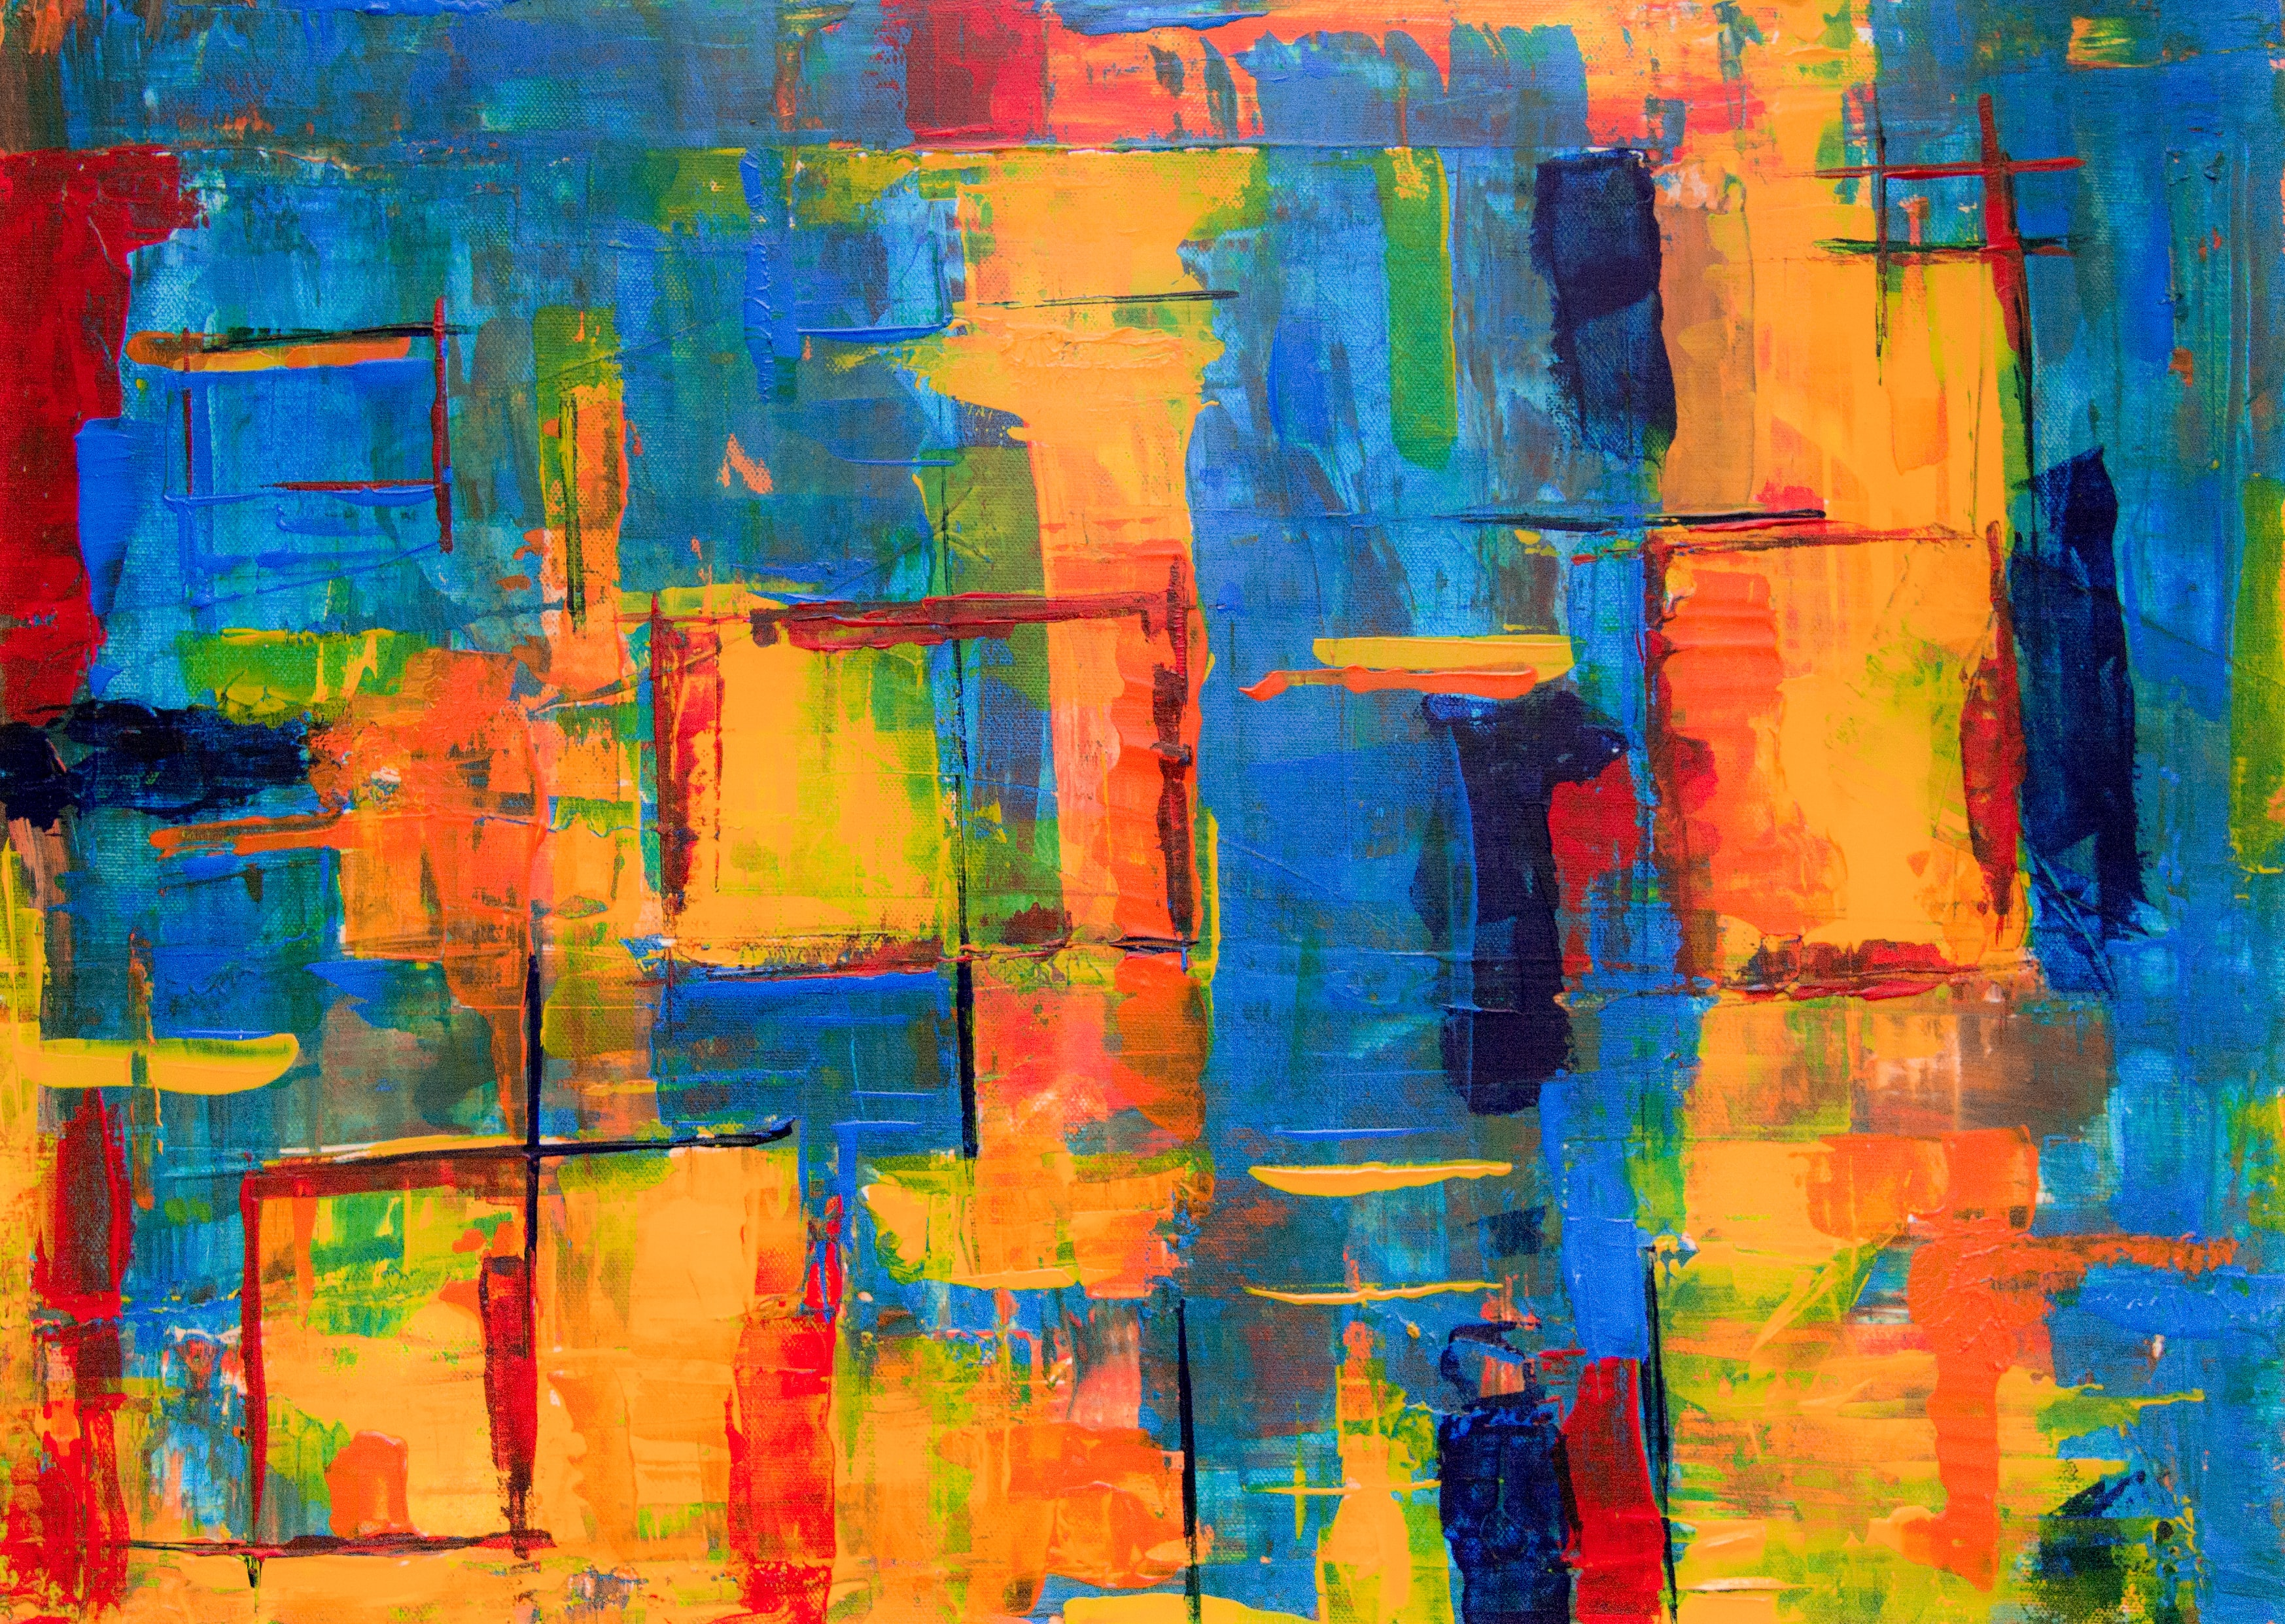 close-up photo of yellow and blue abstract painting